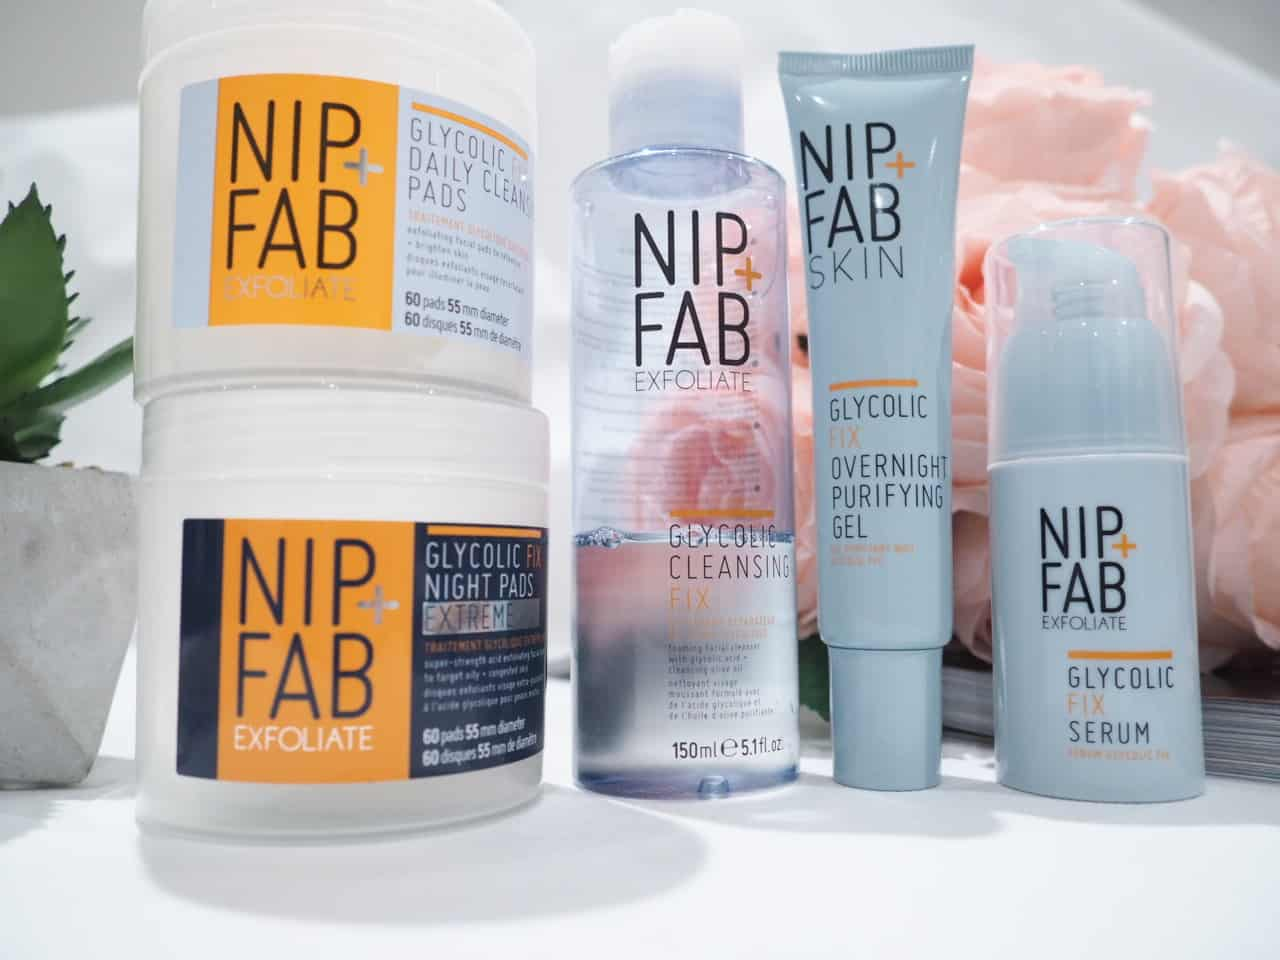 Nip+Fab Glycolic Fix Skincare Review